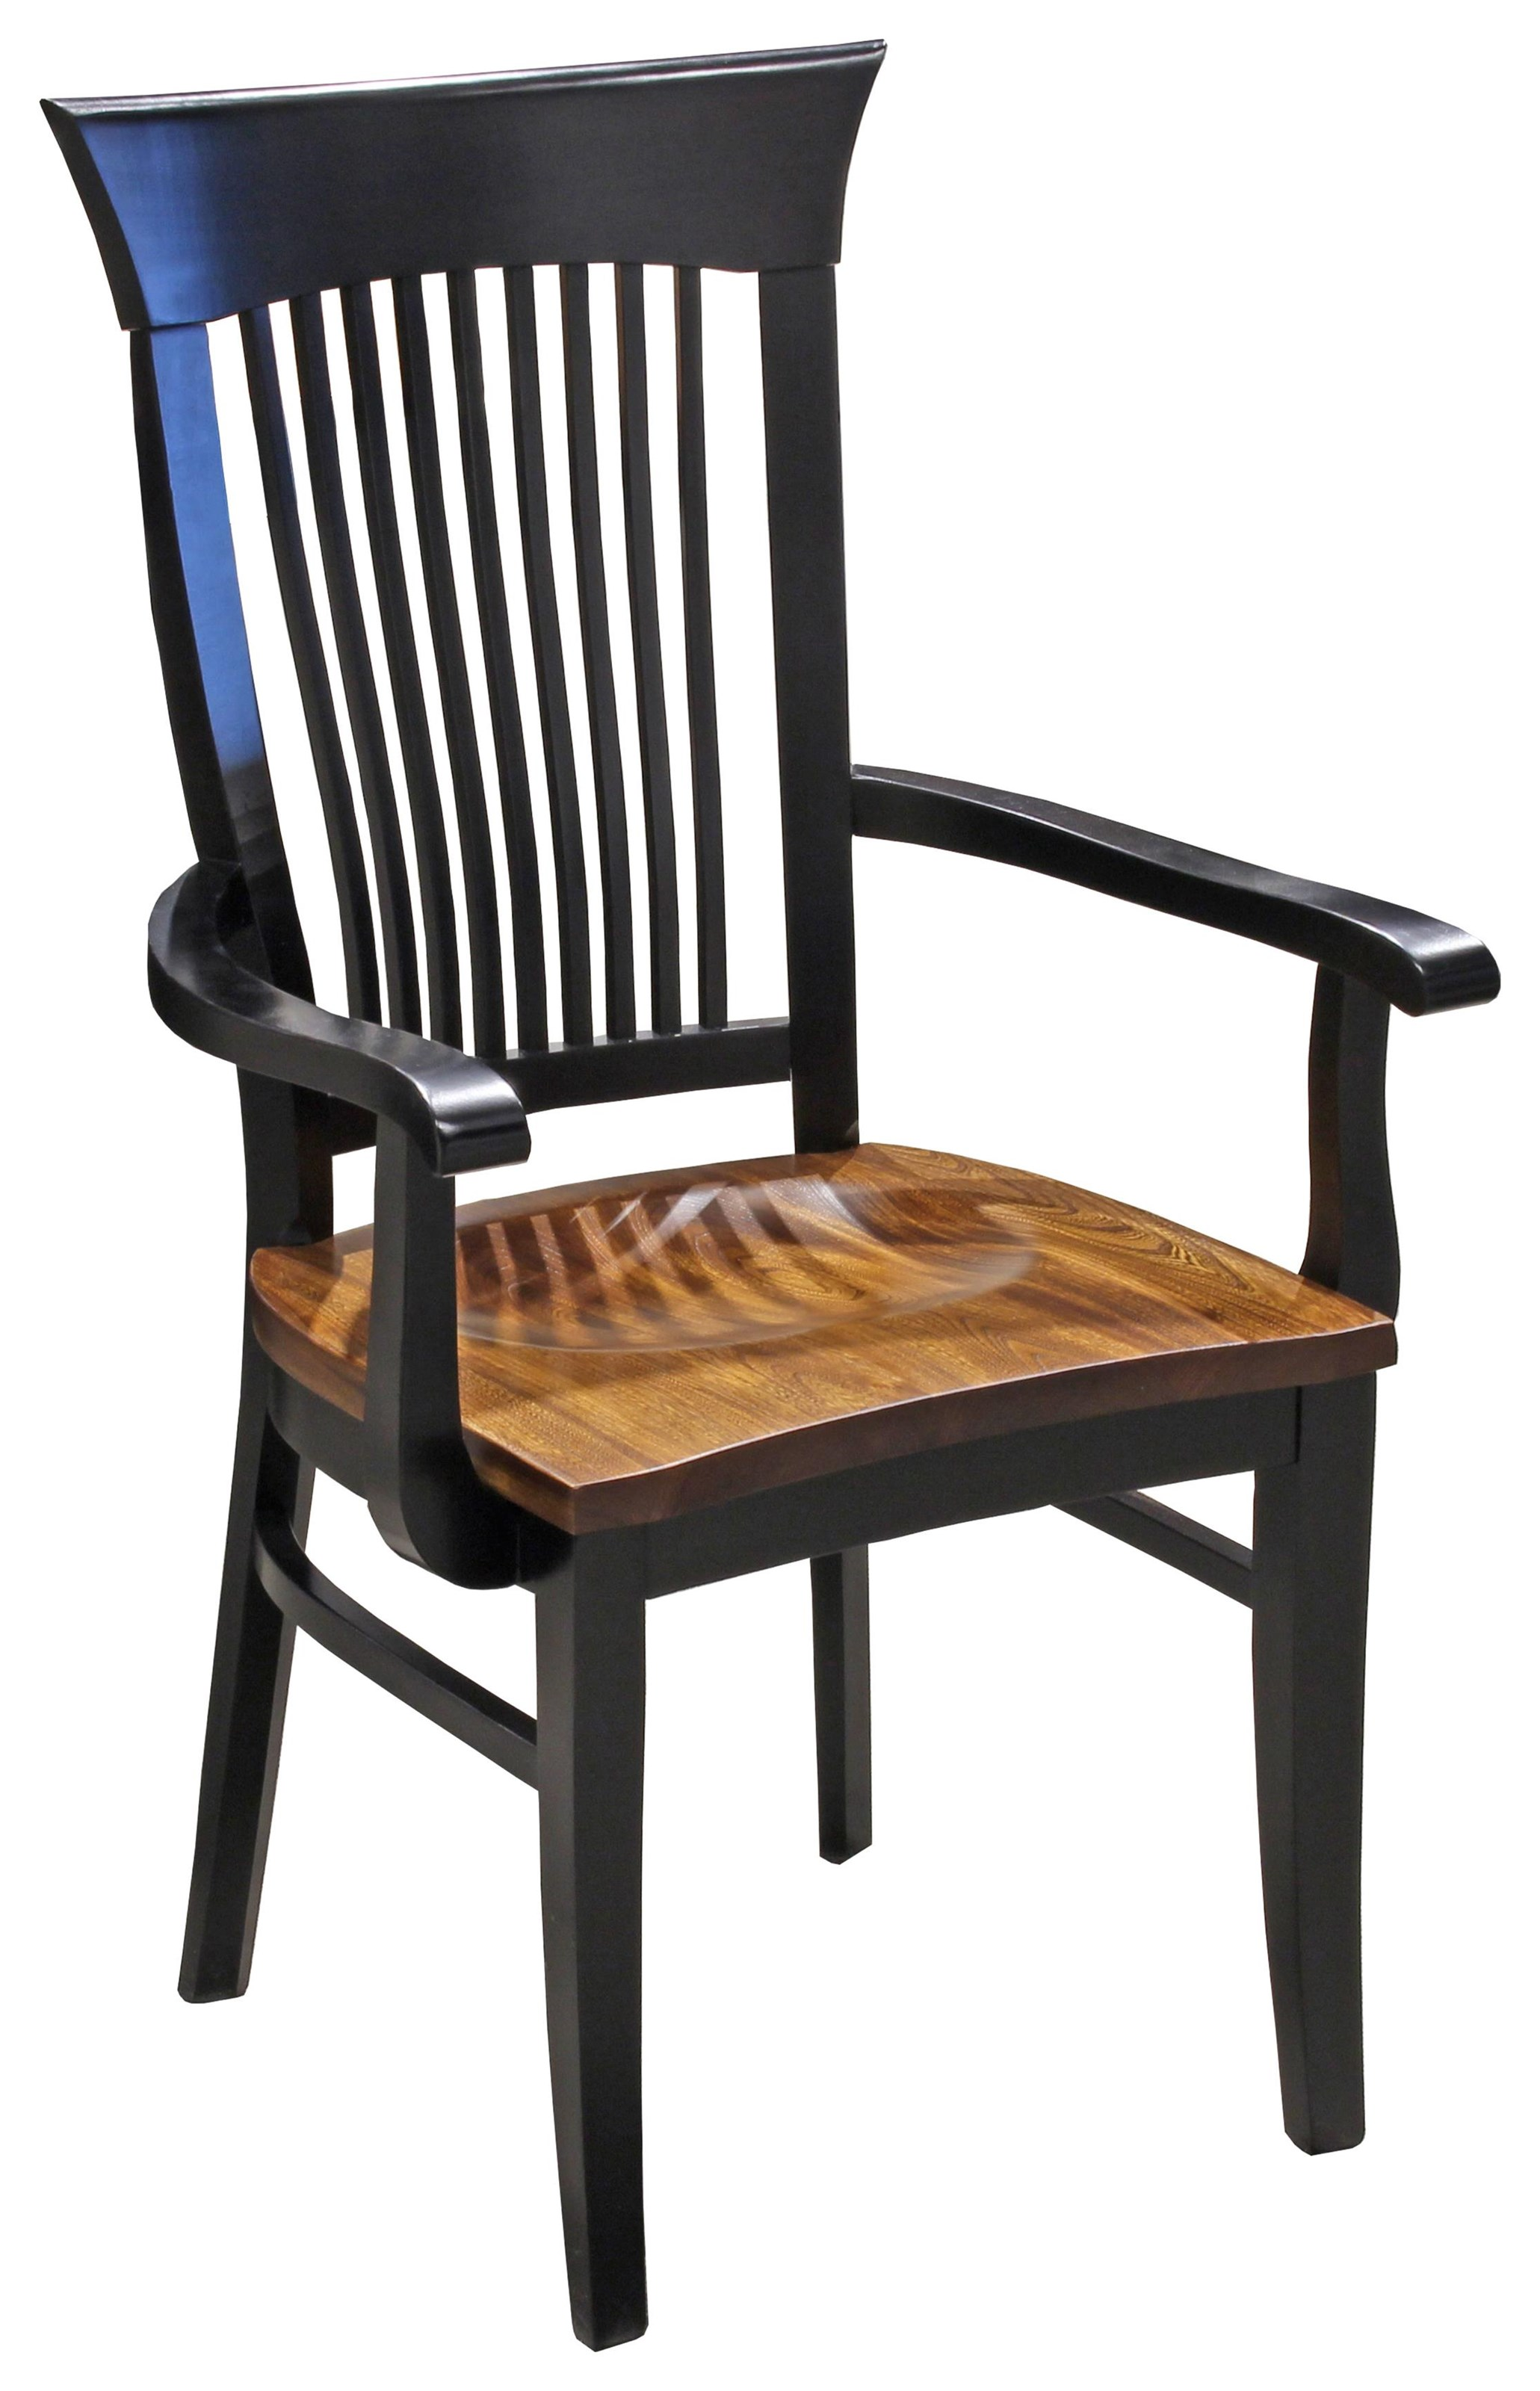 Farmhaus Amish Dining Arm Chair by Daniel's Amish at Ruby Gordon Home